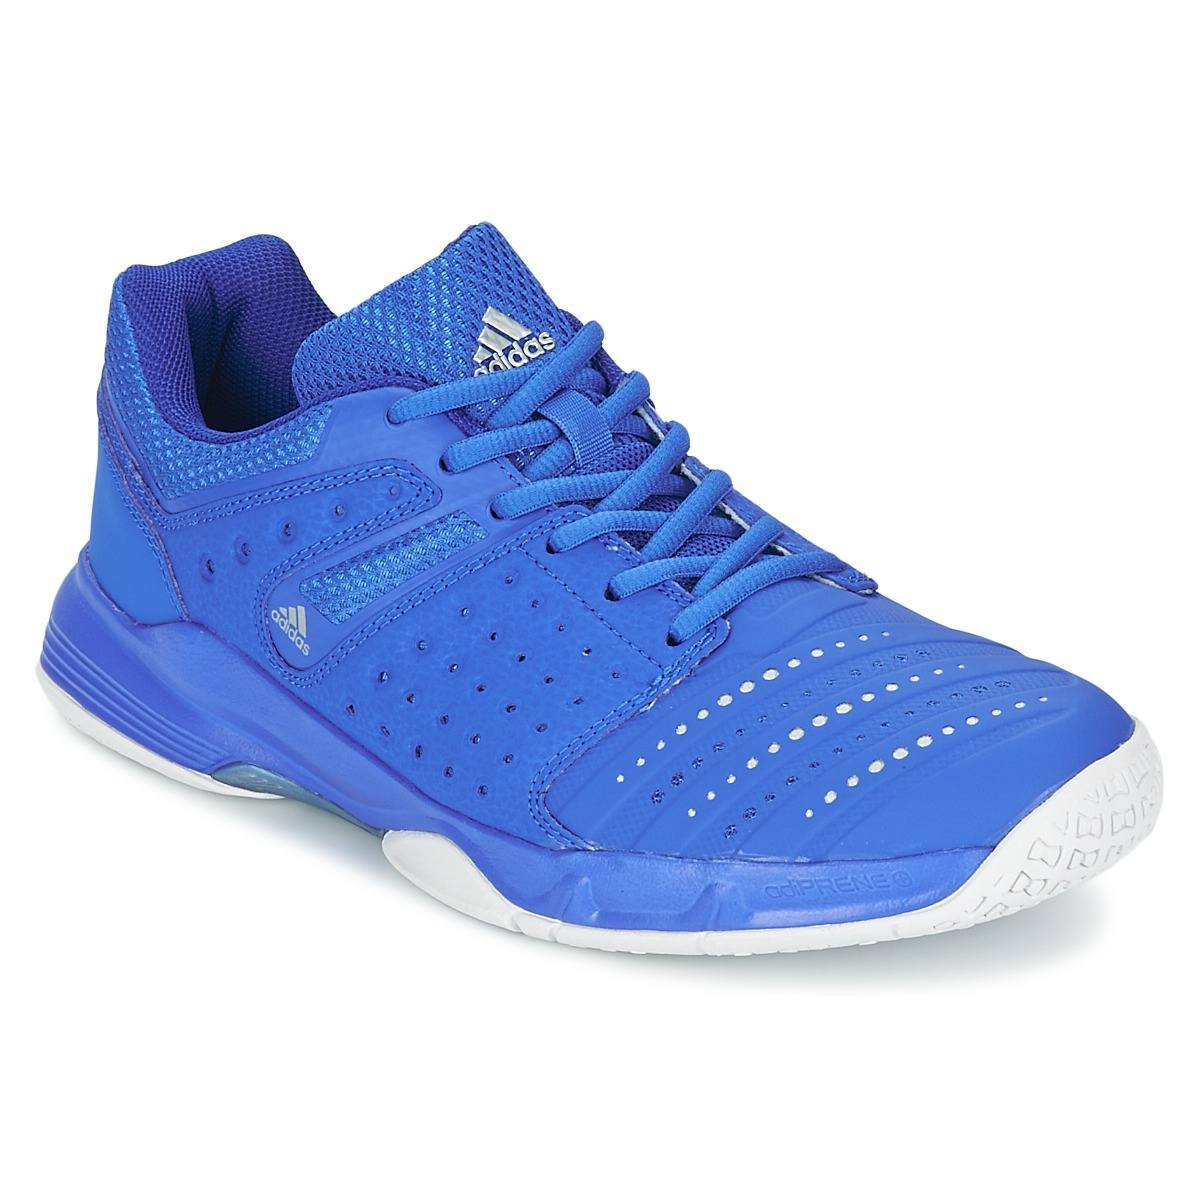 Adidas Court Stabil 12 Squash Source